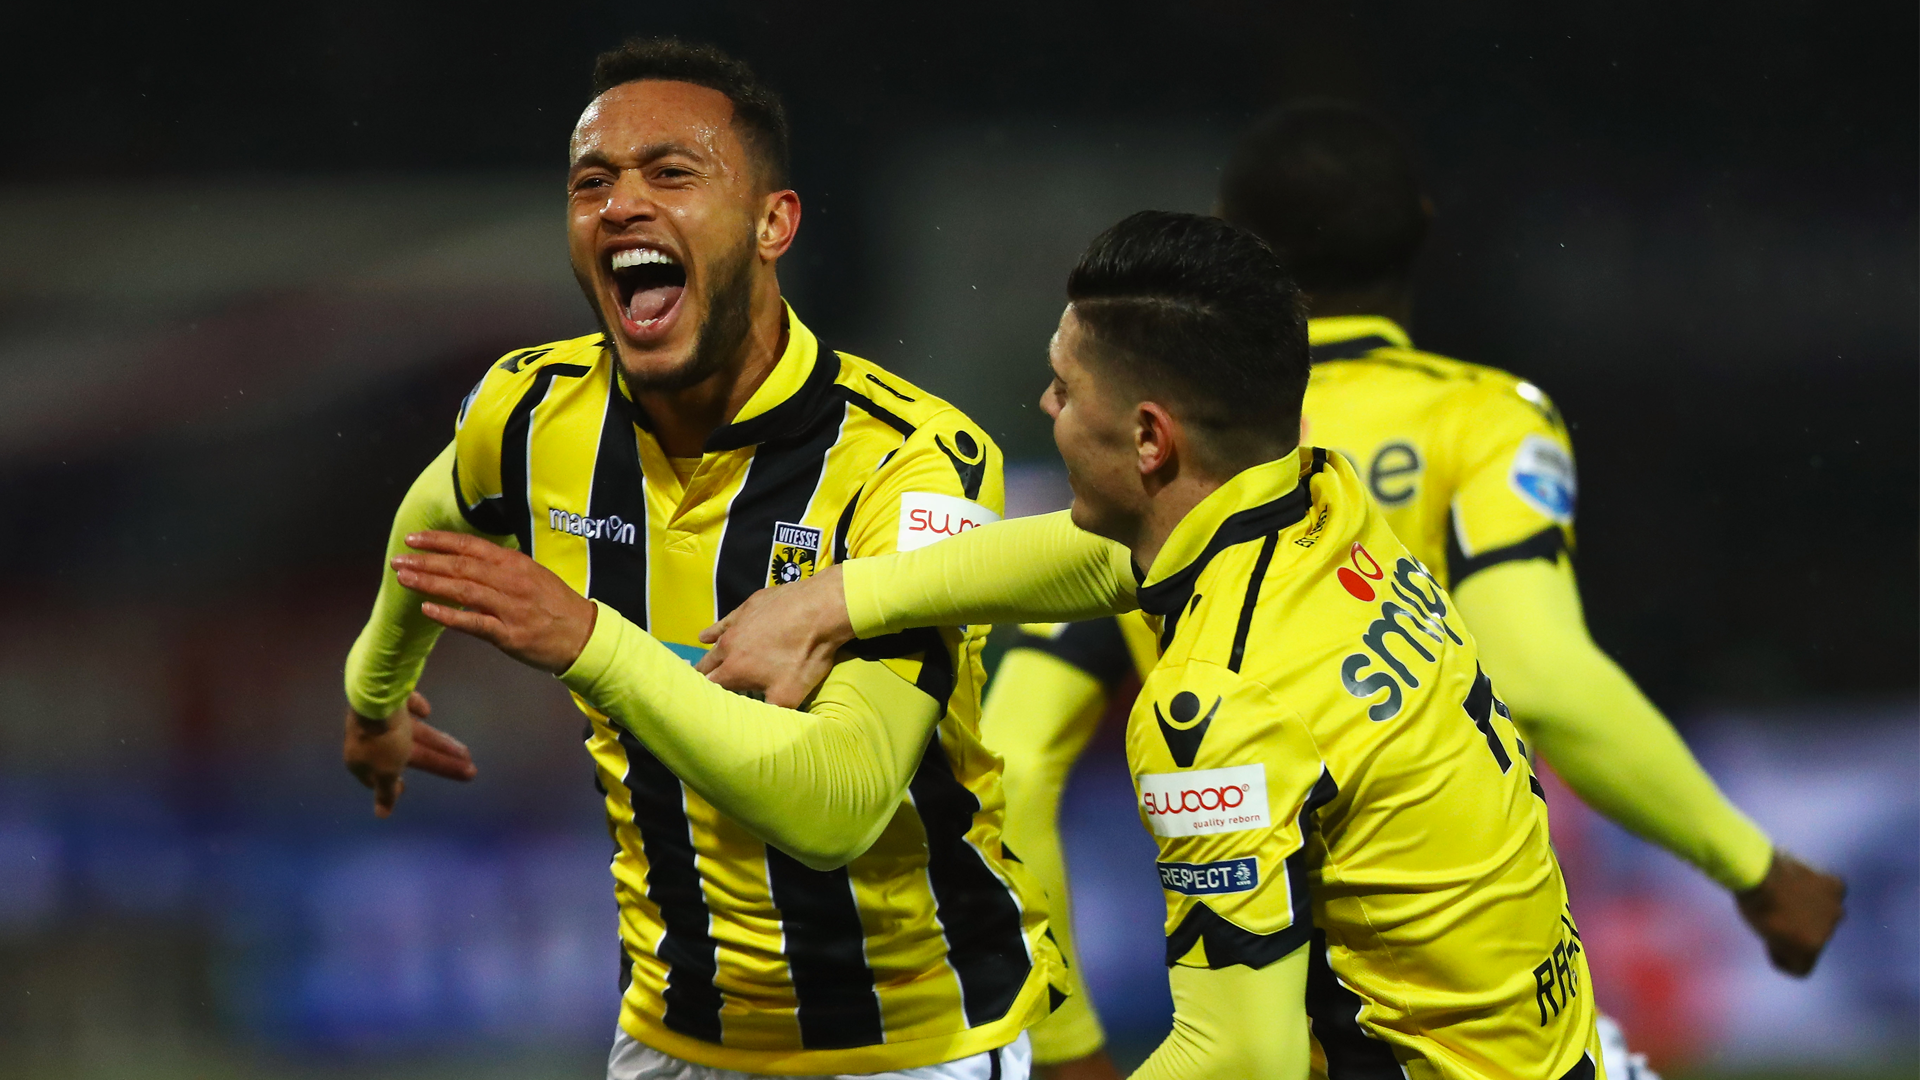 Middlesbrough sign Chelsea midfielder Lewis Baker on season-long loan